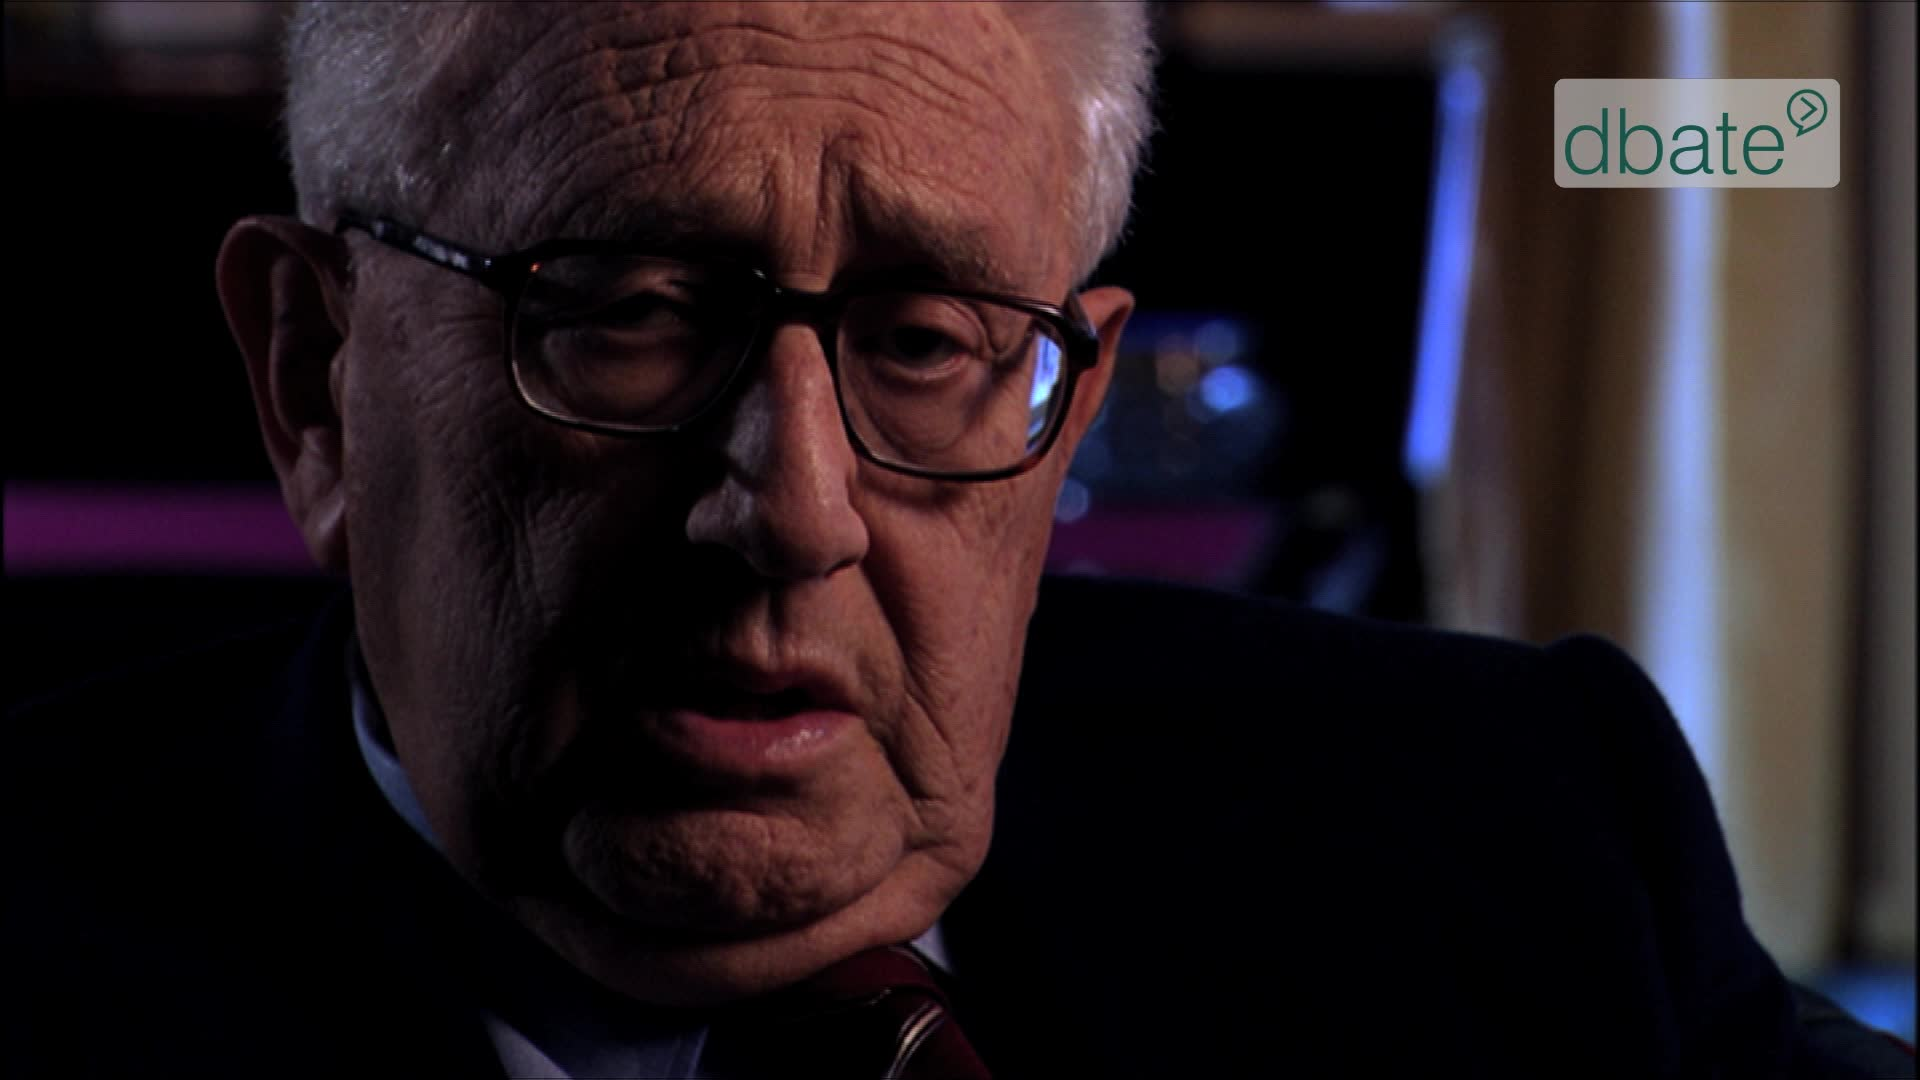 Screenshot_Henry Kissinger_dbate (2)